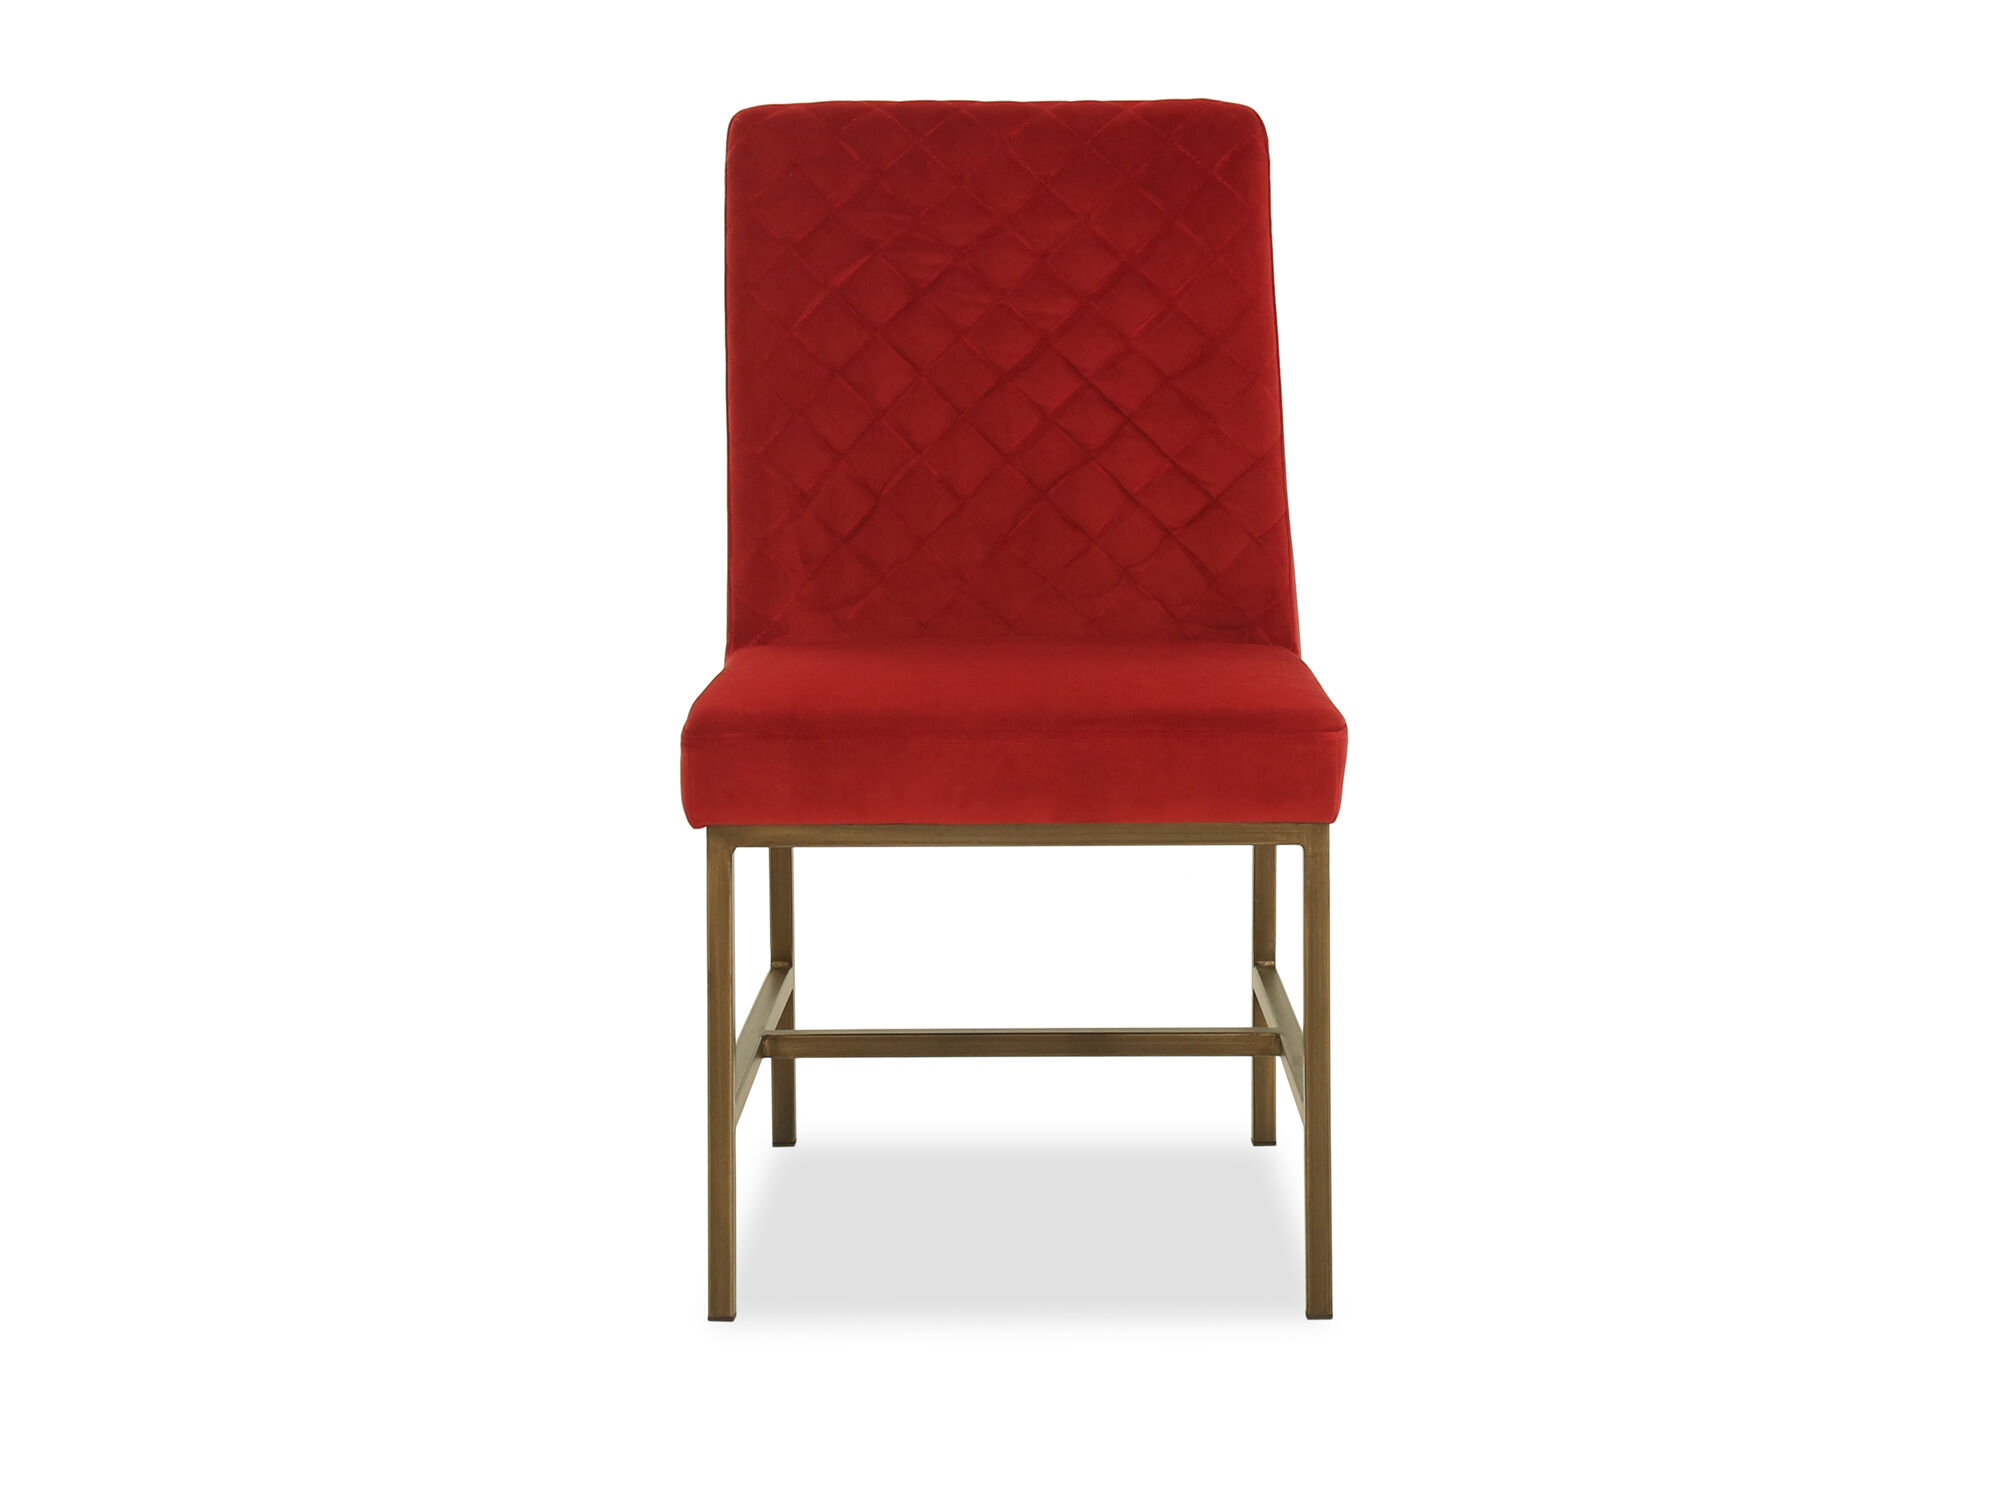 red tufted dining chair global upholstery 69a7019 casual diamond in mathis brothers furniture images